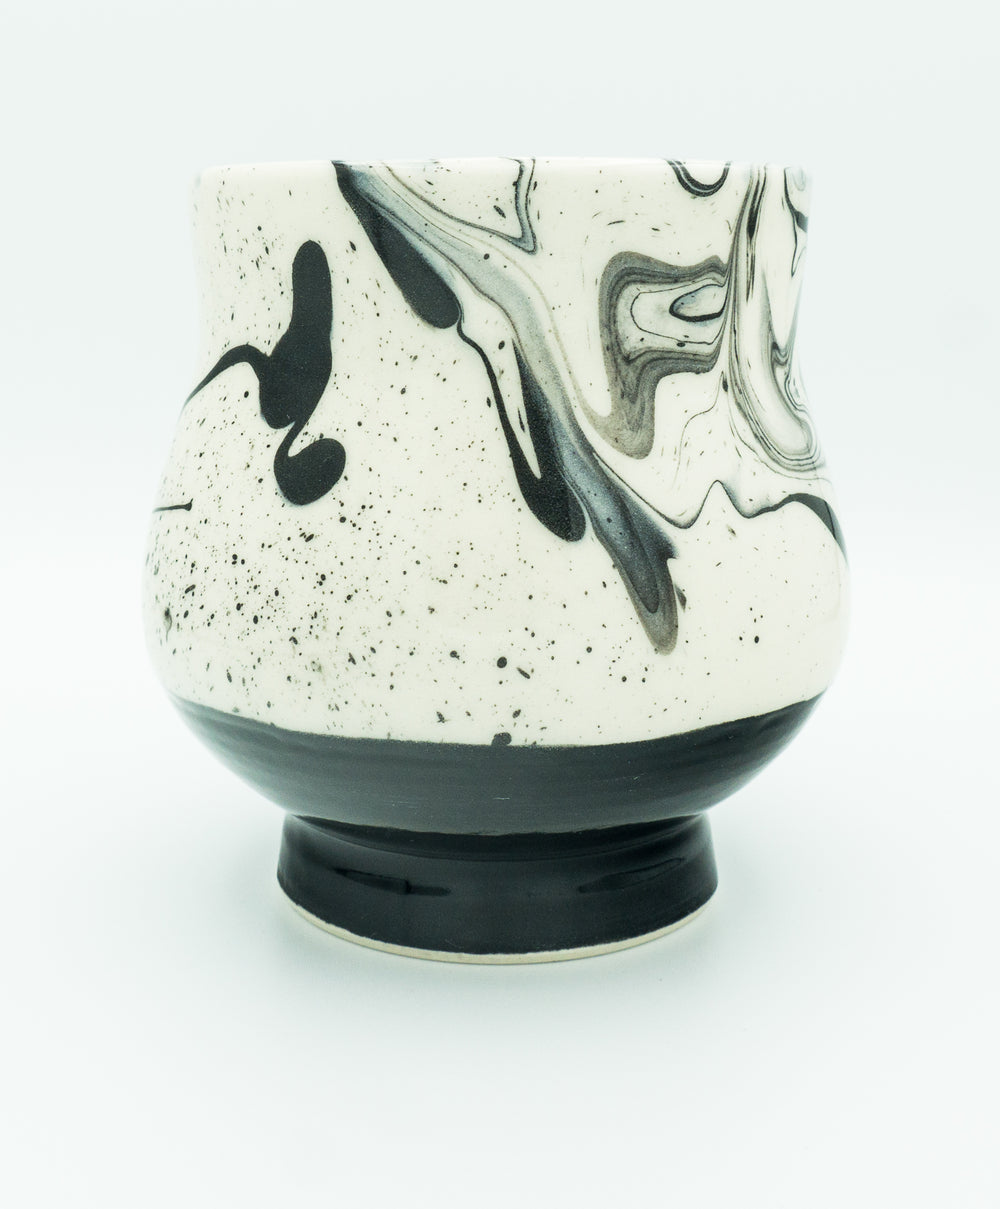 Large B&W, Marbleware, Winter Tea Bowl, Glazed Exterior.